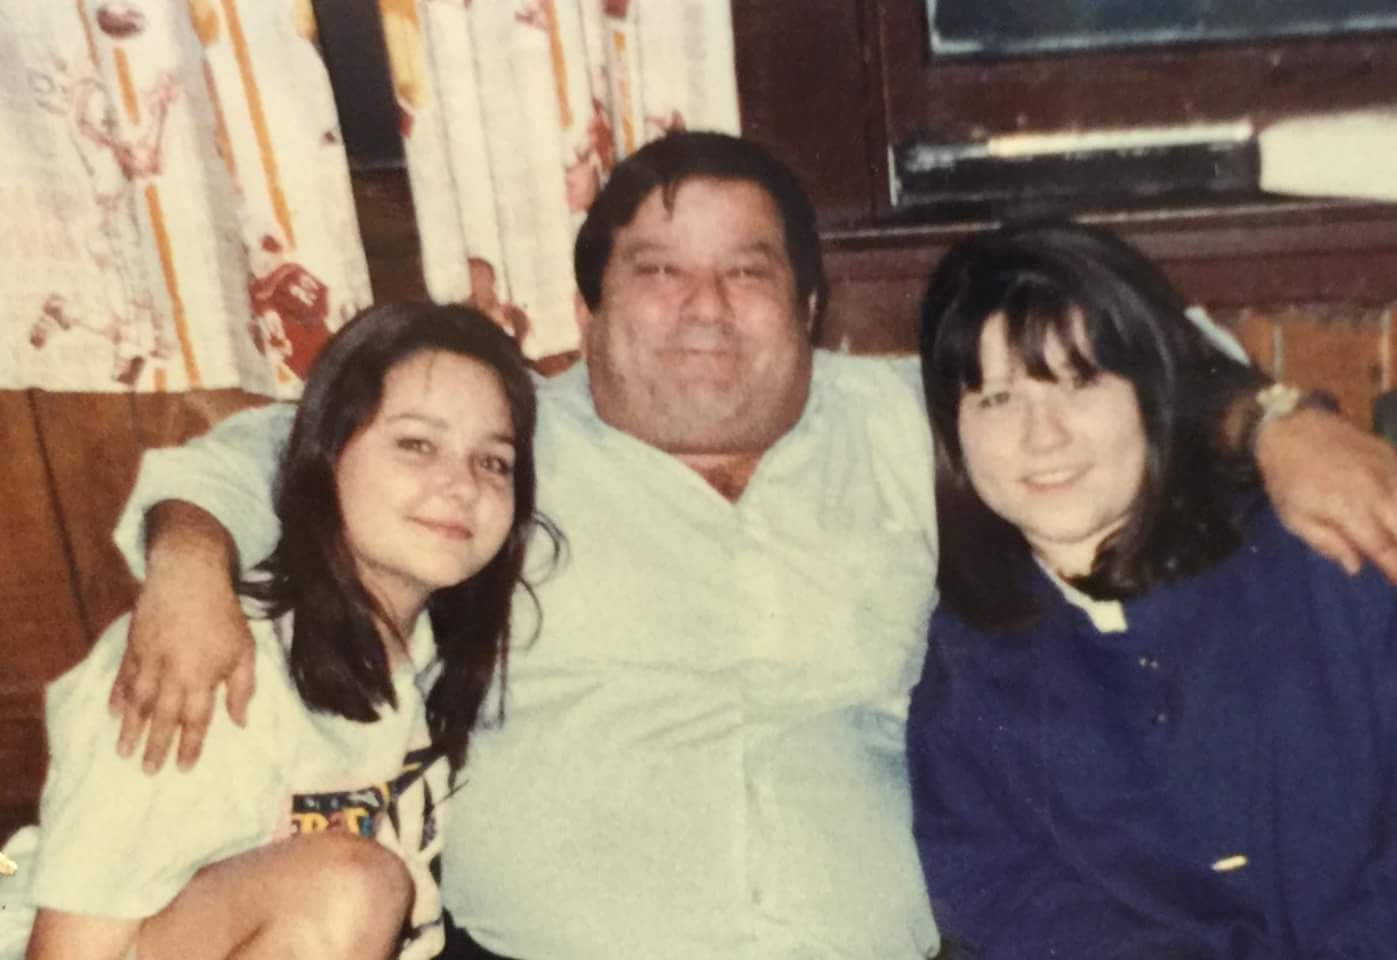 Jose with two of his favorite girls